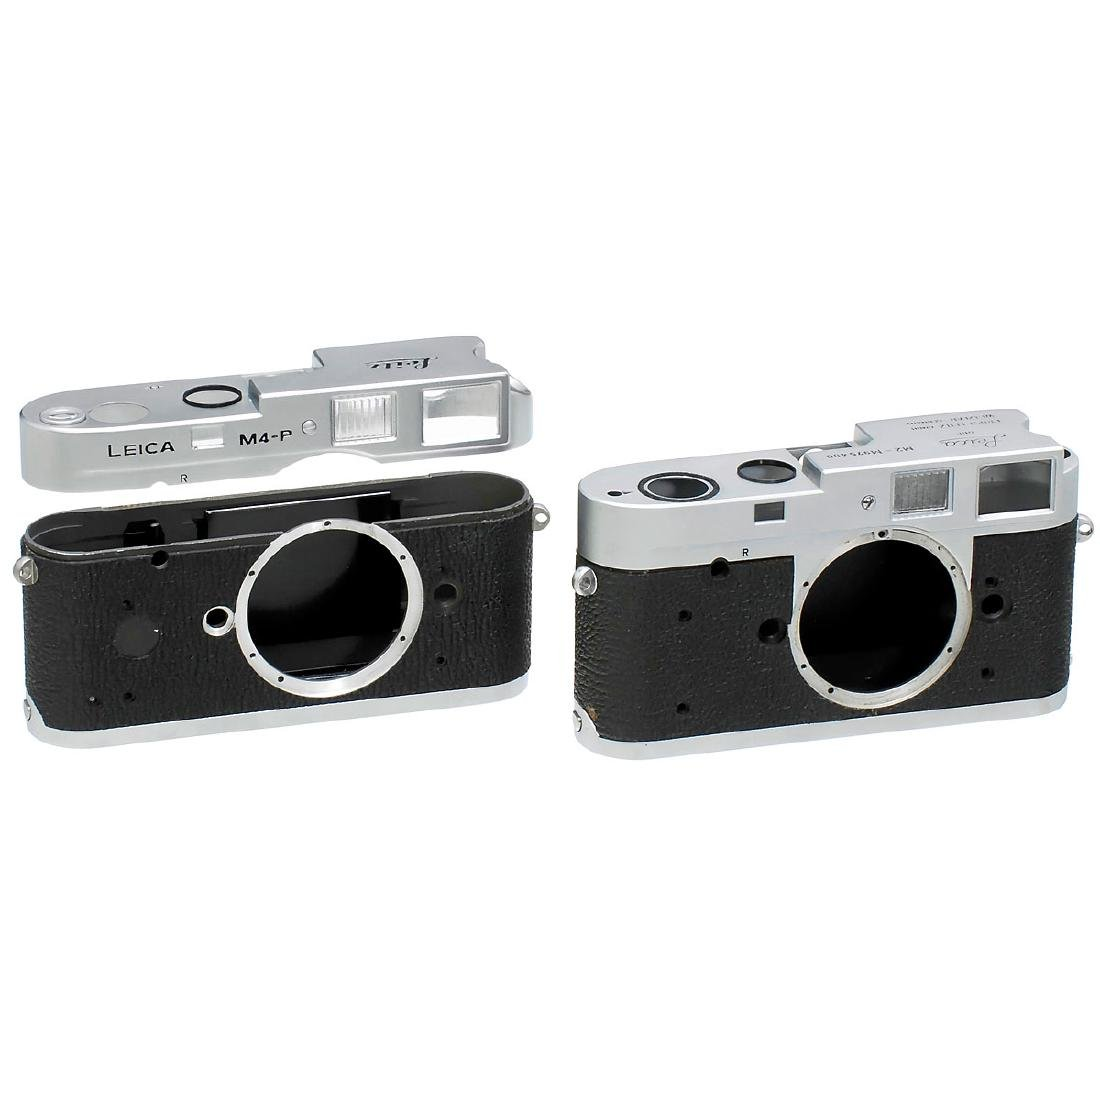 2 Leica Housings: M2 and M4-P